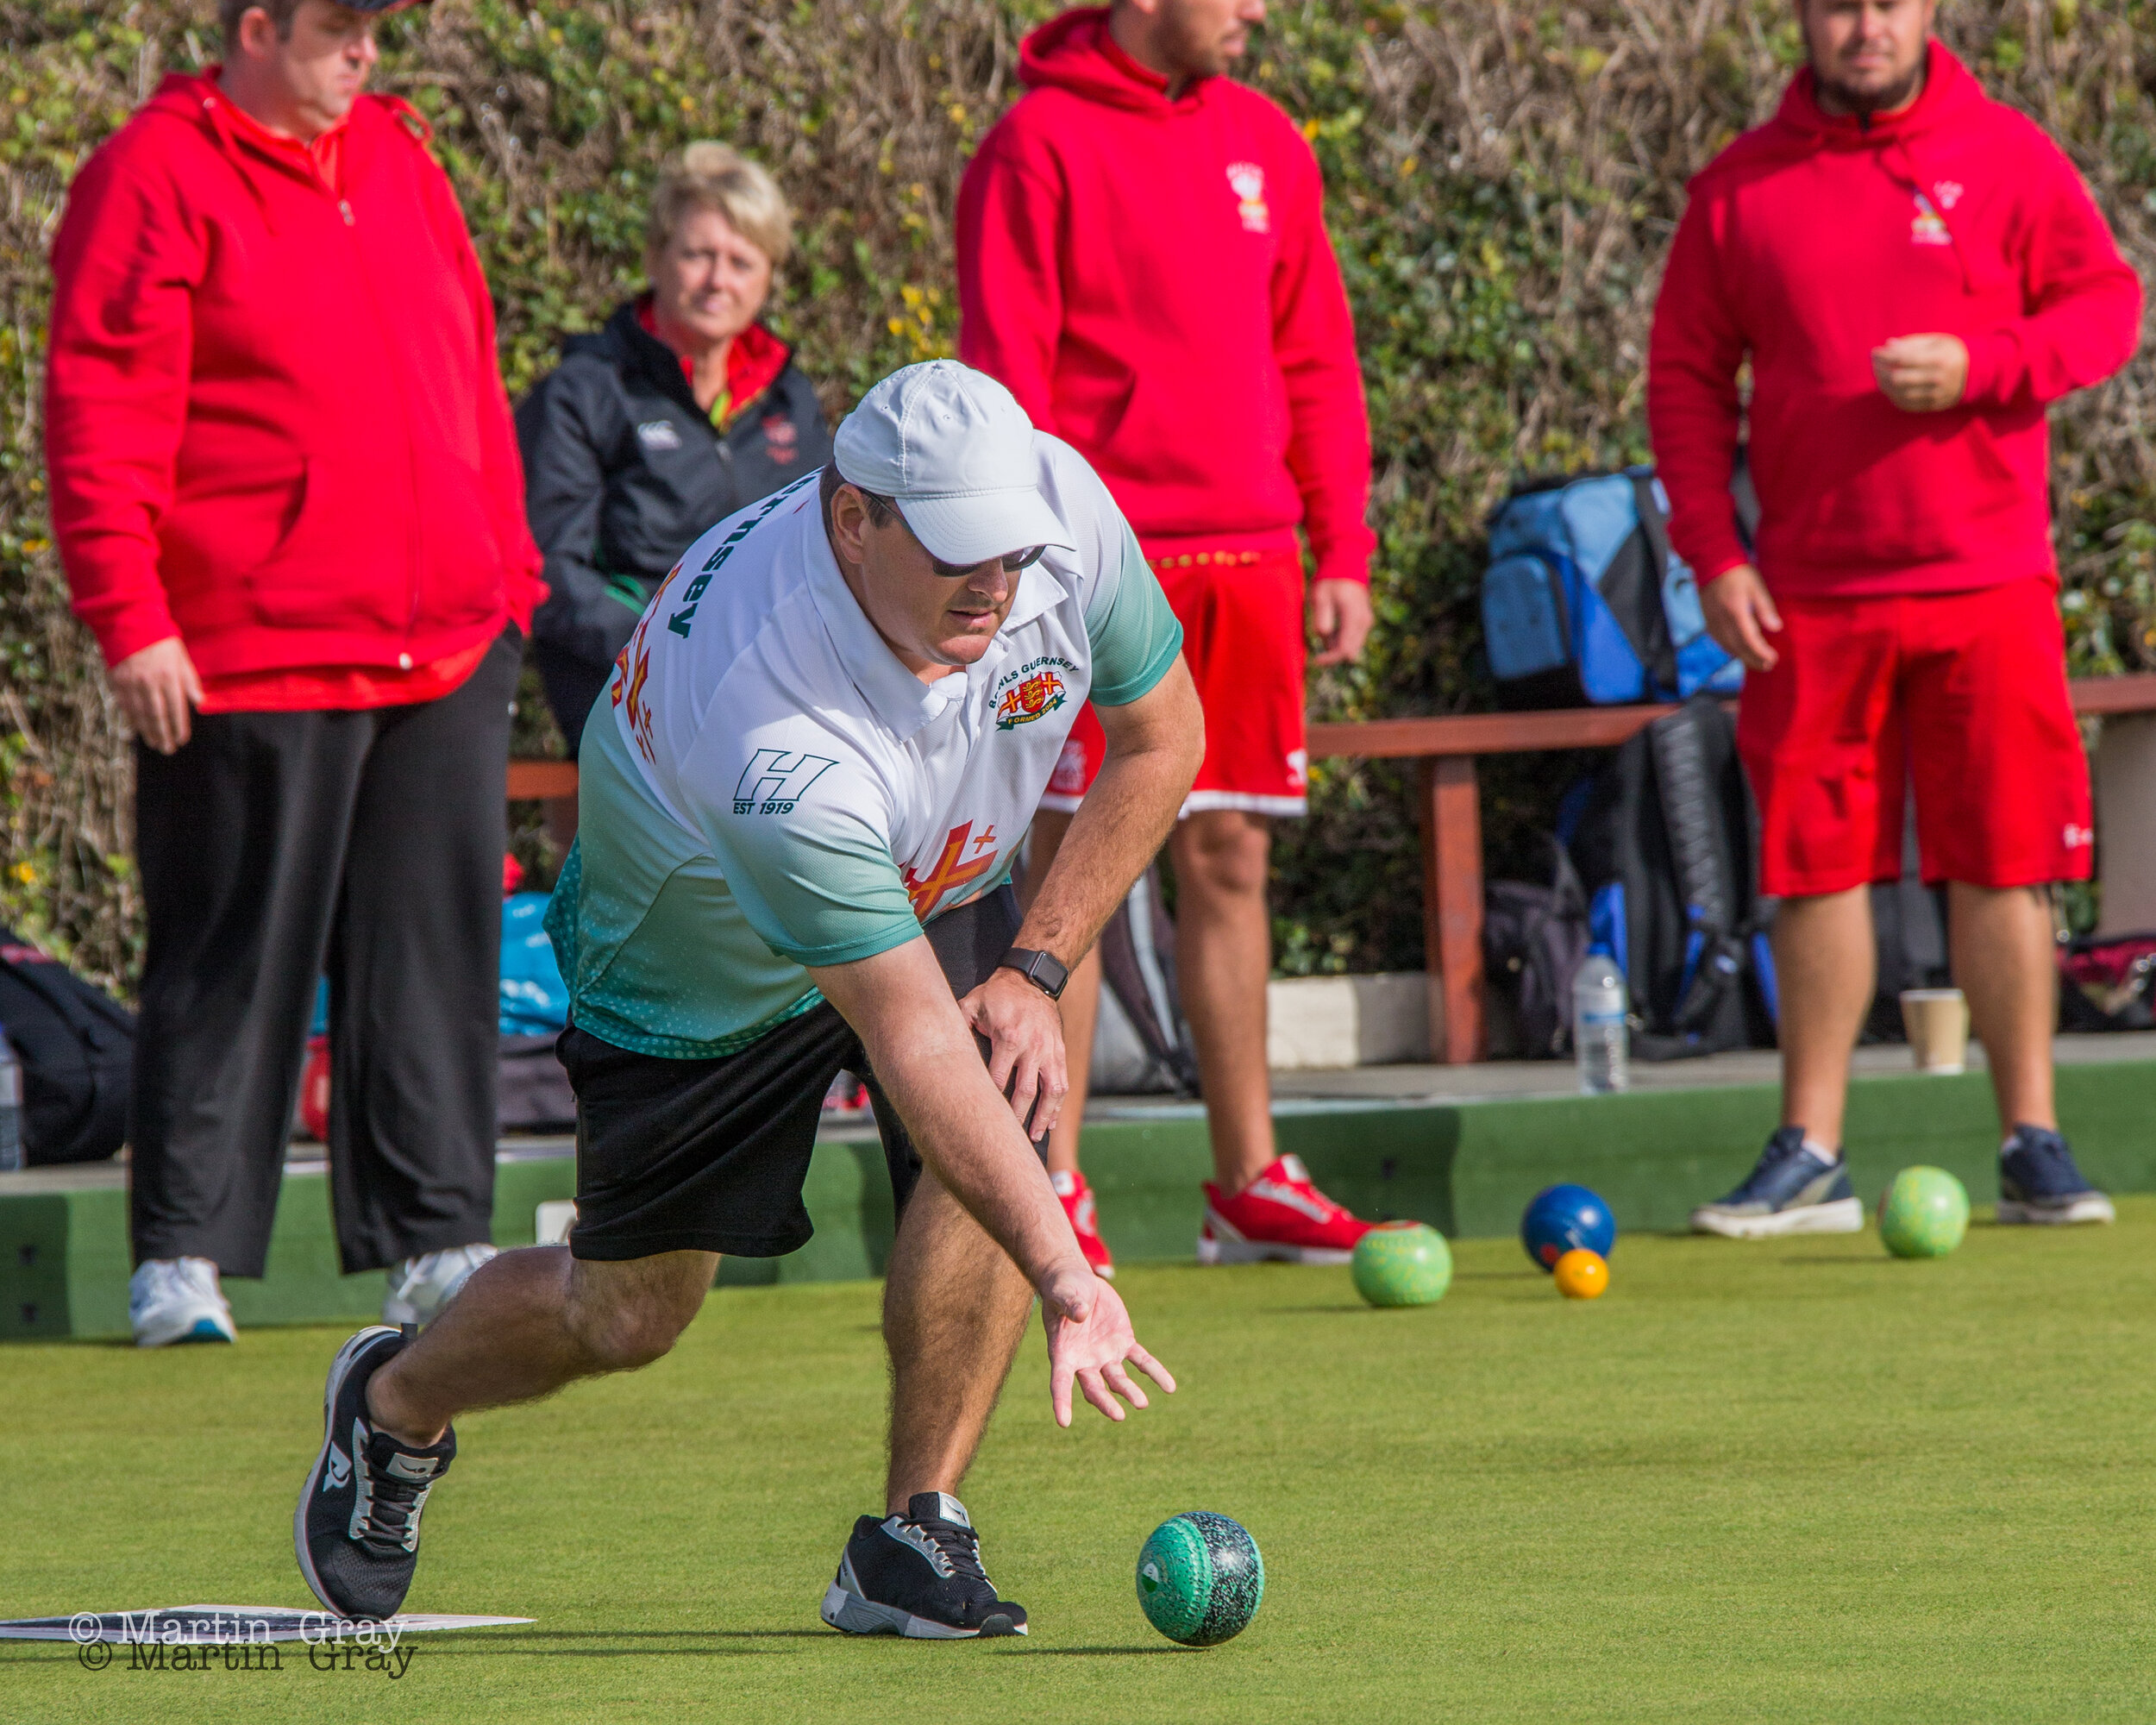 Guernsey Mixed Fours v Isle of Man in the European Championship 2019